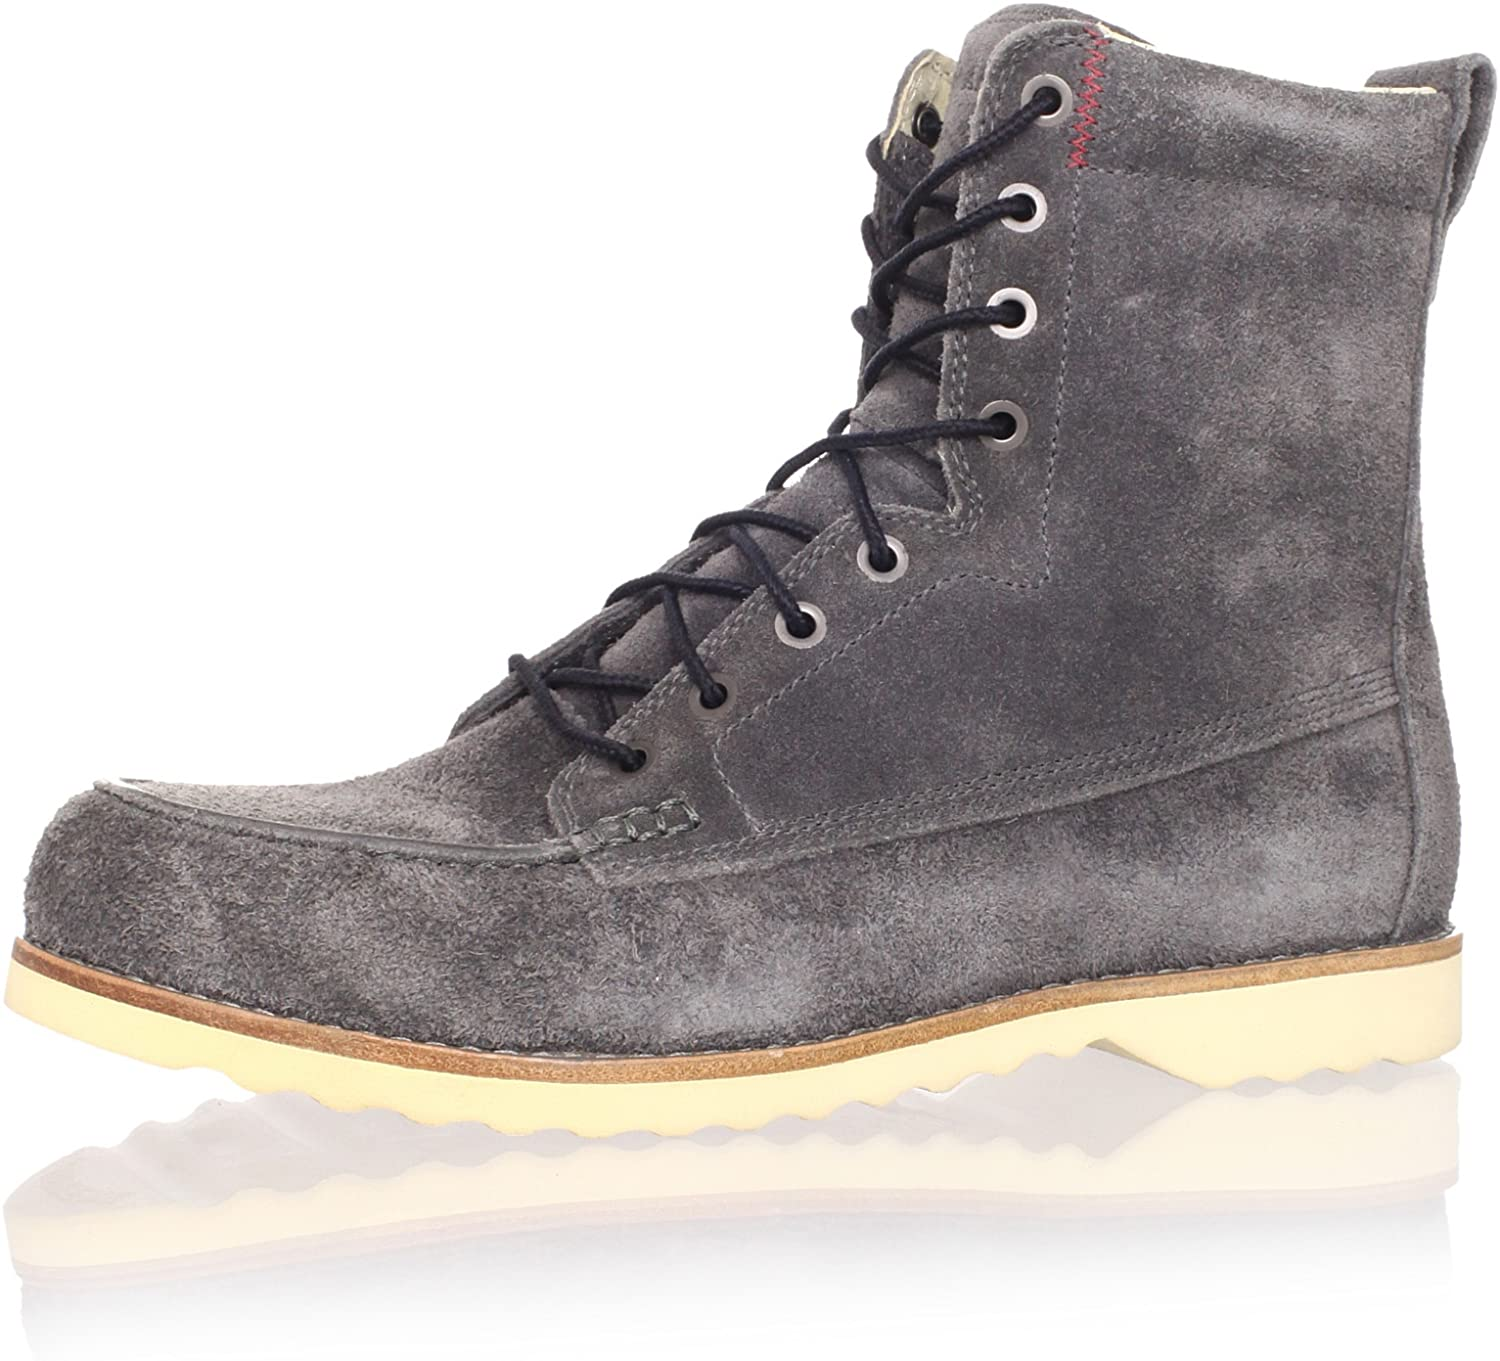 Timberland Abington Guide Mens Leather Boots